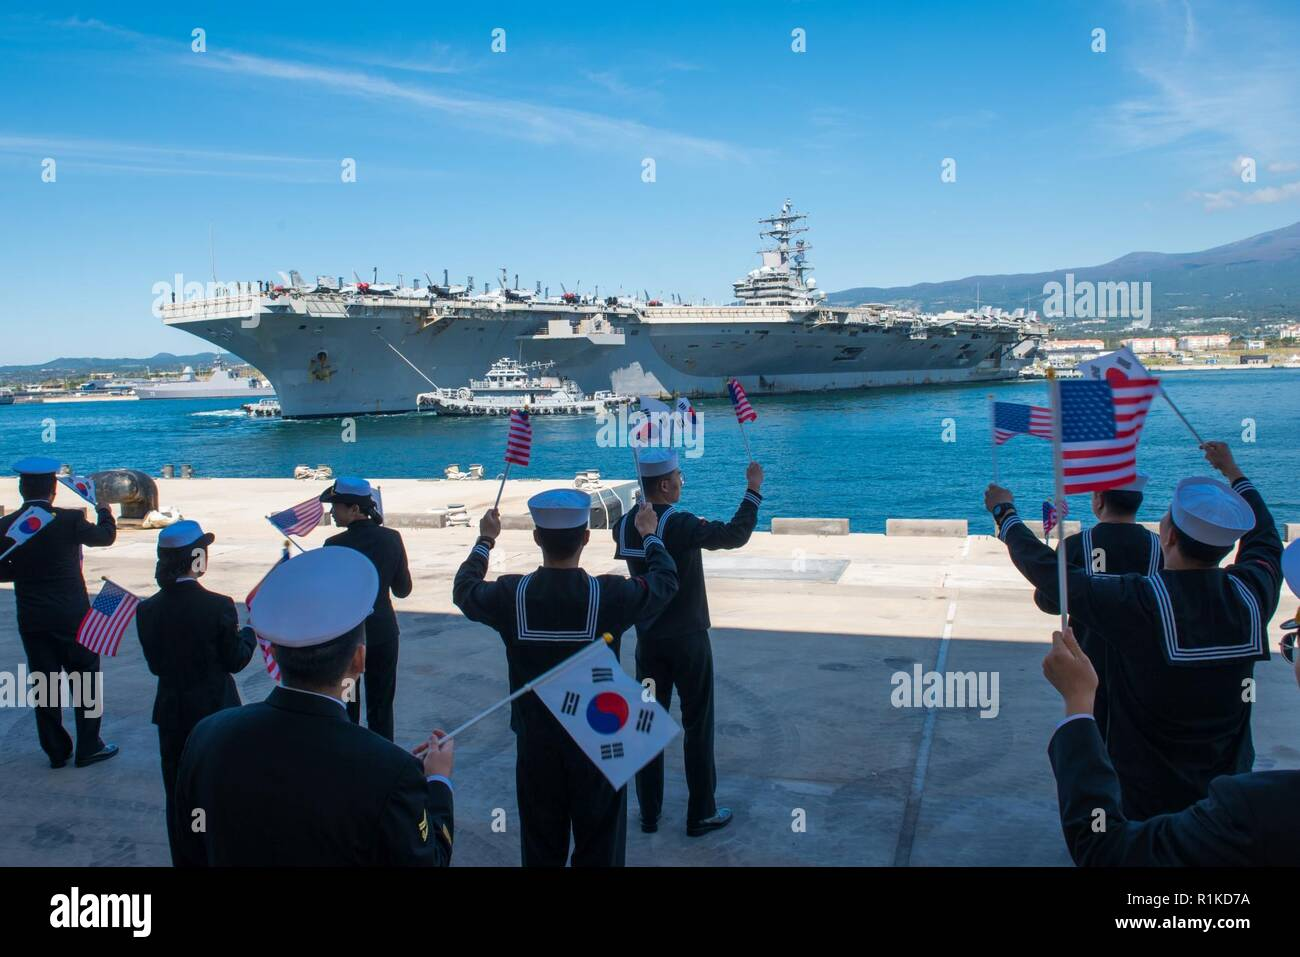 JEJU ISLAND, Republic of Korea, (Oct. 12, 2018) The Nimitz-class nuclear-powered aircraft carrier USS Ronald Reagan (CVN 76) conducts a 180 degree turn while pulling into port at the Republic of Korea (ROK) Navy base in Jeju. Ronald Reagan is forward-deployed to the U.S. 7th Fleet area of operations in support of security and stability in the Indo-Pacific region. Stock Photo